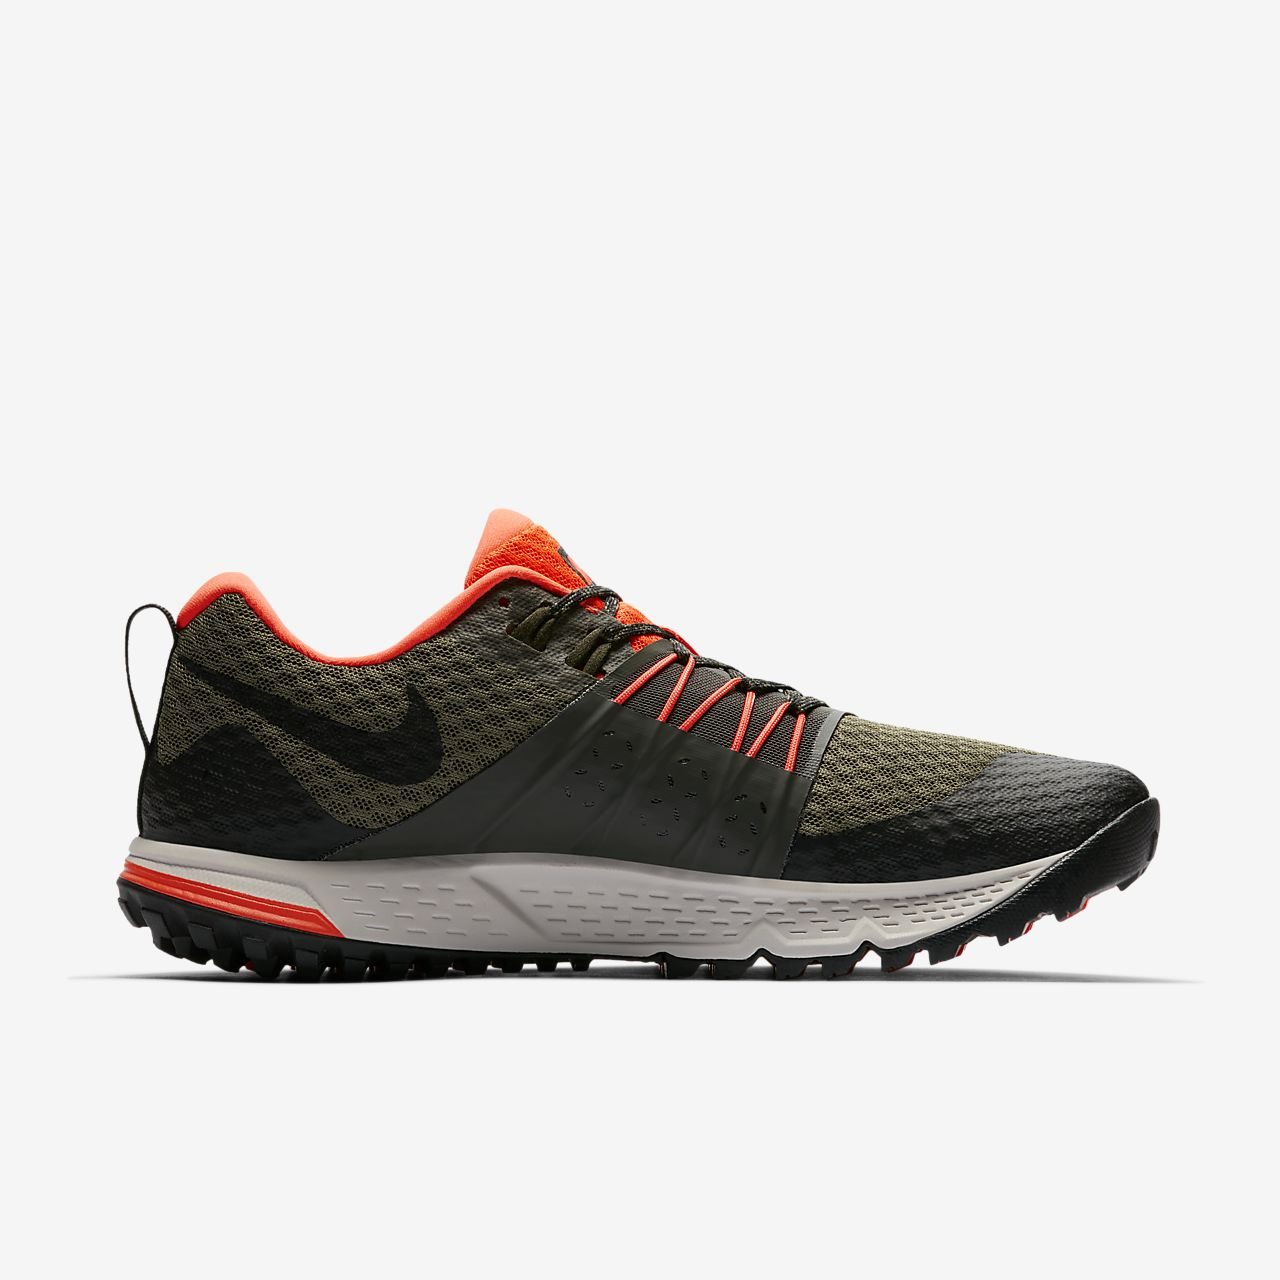 Nike Air Zoom Wildhorse 4 Trail Running Shoe Men